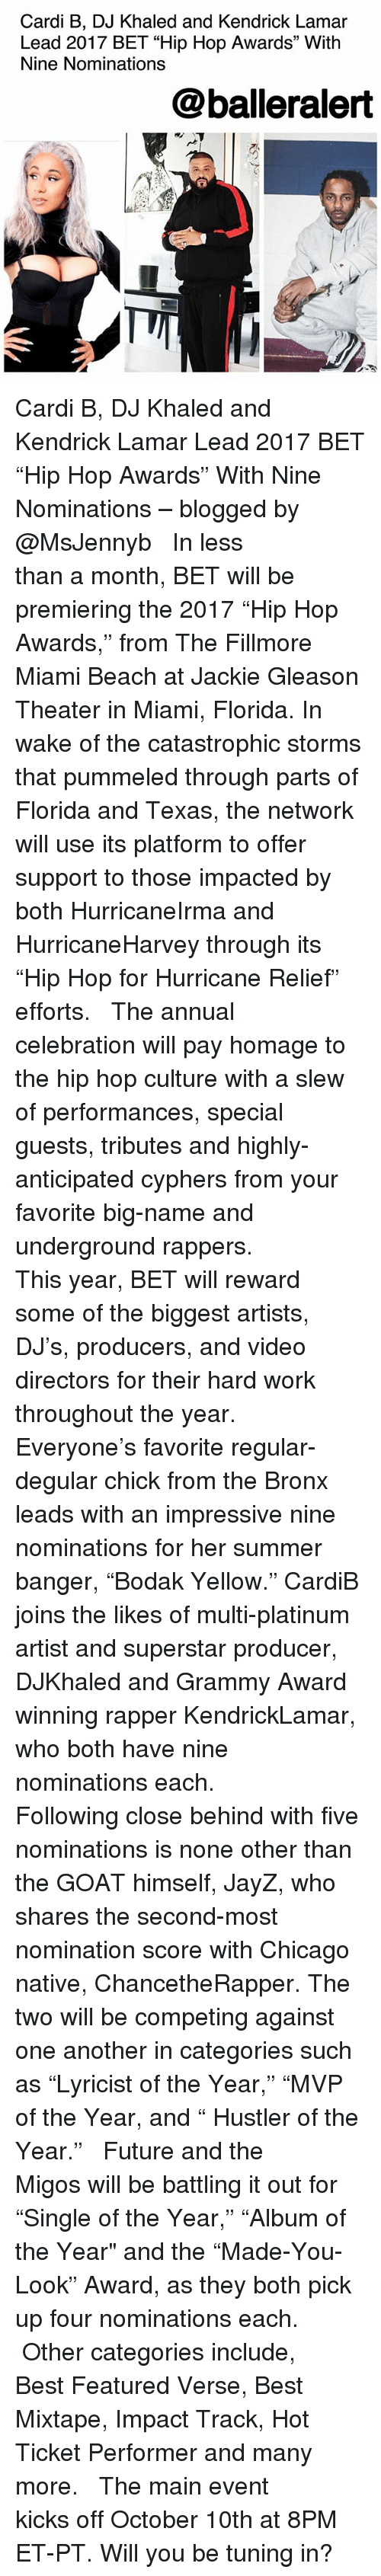 """Main Event: Cardi B, DJ Khaled and Kendrick Lamar  Lead 2017 BET """"Hip Hop Awards"""" With  Nine Nominations  @balleralert Cardi B, DJ Khaled and Kendrick Lamar Lead 2017 BET """"Hip Hop Awards"""" With Nine Nominations – blogged by @MsJennyb ⠀⠀⠀⠀⠀⠀⠀ ⠀⠀⠀⠀⠀⠀⠀ In less than a month, BET will be premiering the 2017 """"Hip Hop Awards,"""" from The Fillmore Miami Beach at Jackie Gleason Theater in Miami, Florida. In wake of the catastrophic storms that pummeled through parts of Florida and Texas, the network will use its platform to offer support to those impacted by both HurricaneIrma and HurricaneHarvey through its """"Hip Hop for Hurricane Relief"""" efforts. ⠀⠀⠀⠀⠀⠀⠀ ⠀⠀⠀⠀⠀⠀⠀ The annual celebration will pay homage to the hip hop culture with a slew of performances, special guests, tributes and highly-anticipated cyphers from your favorite big-name and underground rappers. ⠀⠀⠀⠀⠀⠀⠀ ⠀⠀⠀⠀⠀⠀⠀ This year, BET will reward some of the biggest artists, DJ's, producers, and video directors for their hard work throughout the year. ⠀⠀⠀⠀⠀⠀⠀ ⠀⠀⠀⠀⠀⠀⠀ Everyone's favorite regular-degular chick from the Bronx leads with an impressive nine nominations for her summer banger, """"Bodak Yellow."""" CardiB joins the likes of multi-platinum artist and superstar producer, DJKhaled and Grammy Award winning rapper KendrickLamar, who both have nine nominations each. ⠀⠀⠀⠀⠀⠀⠀ ⠀⠀⠀⠀⠀⠀⠀ Following close behind with five nominations is none other than the GOAT himself, JayZ, who shares the second-most nomination score with Chicago native, ChancetheRapper. The two will be competing against one another in categories such as """"Lyricist of the Year,"""" """"MVP of the Year, and """" Hustler of the Year."""" ⠀⠀⠀⠀⠀⠀⠀ ⠀⠀⠀⠀⠀⠀⠀ Future and the Migos will be battling it out for """"Single of the Year,"""" """"Album of the Year"""" and the """"Made-You-Look"""" Award, as they both pick up four nominations each. ⠀⠀⠀⠀⠀⠀⠀ ⠀⠀⠀⠀⠀⠀⠀ Other categories include, Best Featured Verse, Best Mixtape, Impact Track, Hot Ticket Performer and many more. ⠀⠀⠀⠀⠀⠀⠀ ⠀⠀⠀⠀⠀⠀⠀ The main event kicks o"""